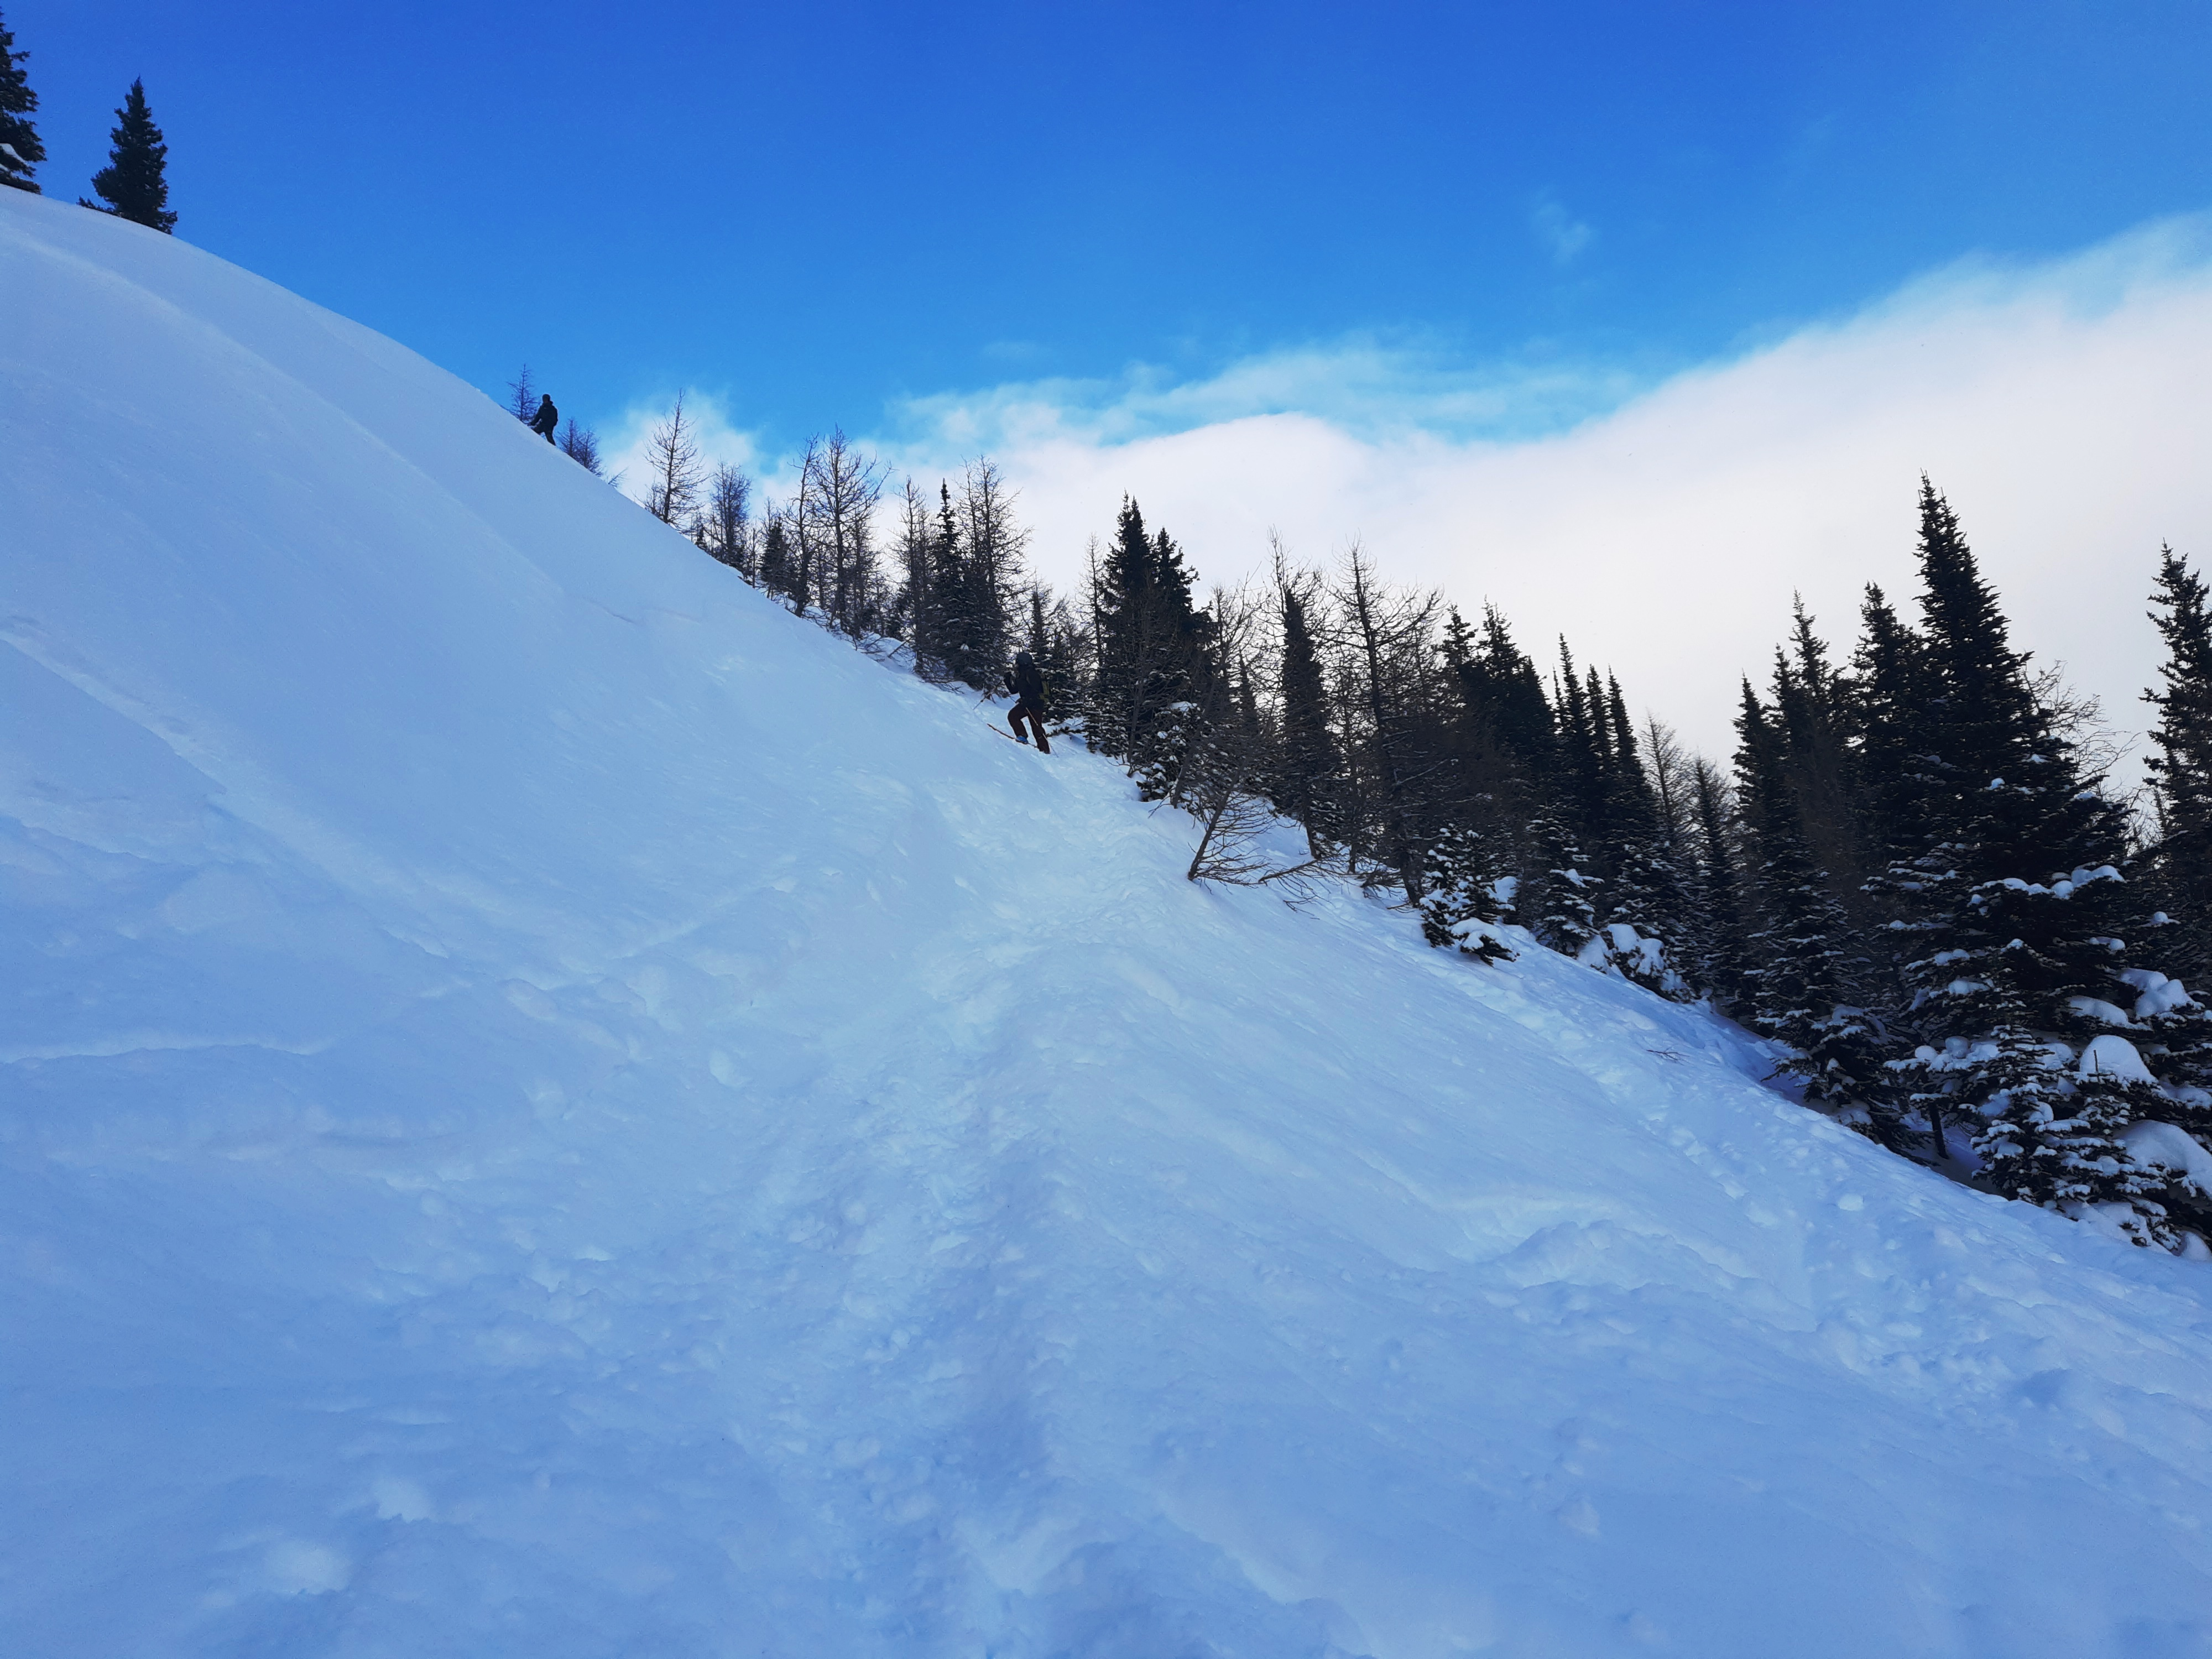 12 A -back-Country-skier-going-down-the-same-way